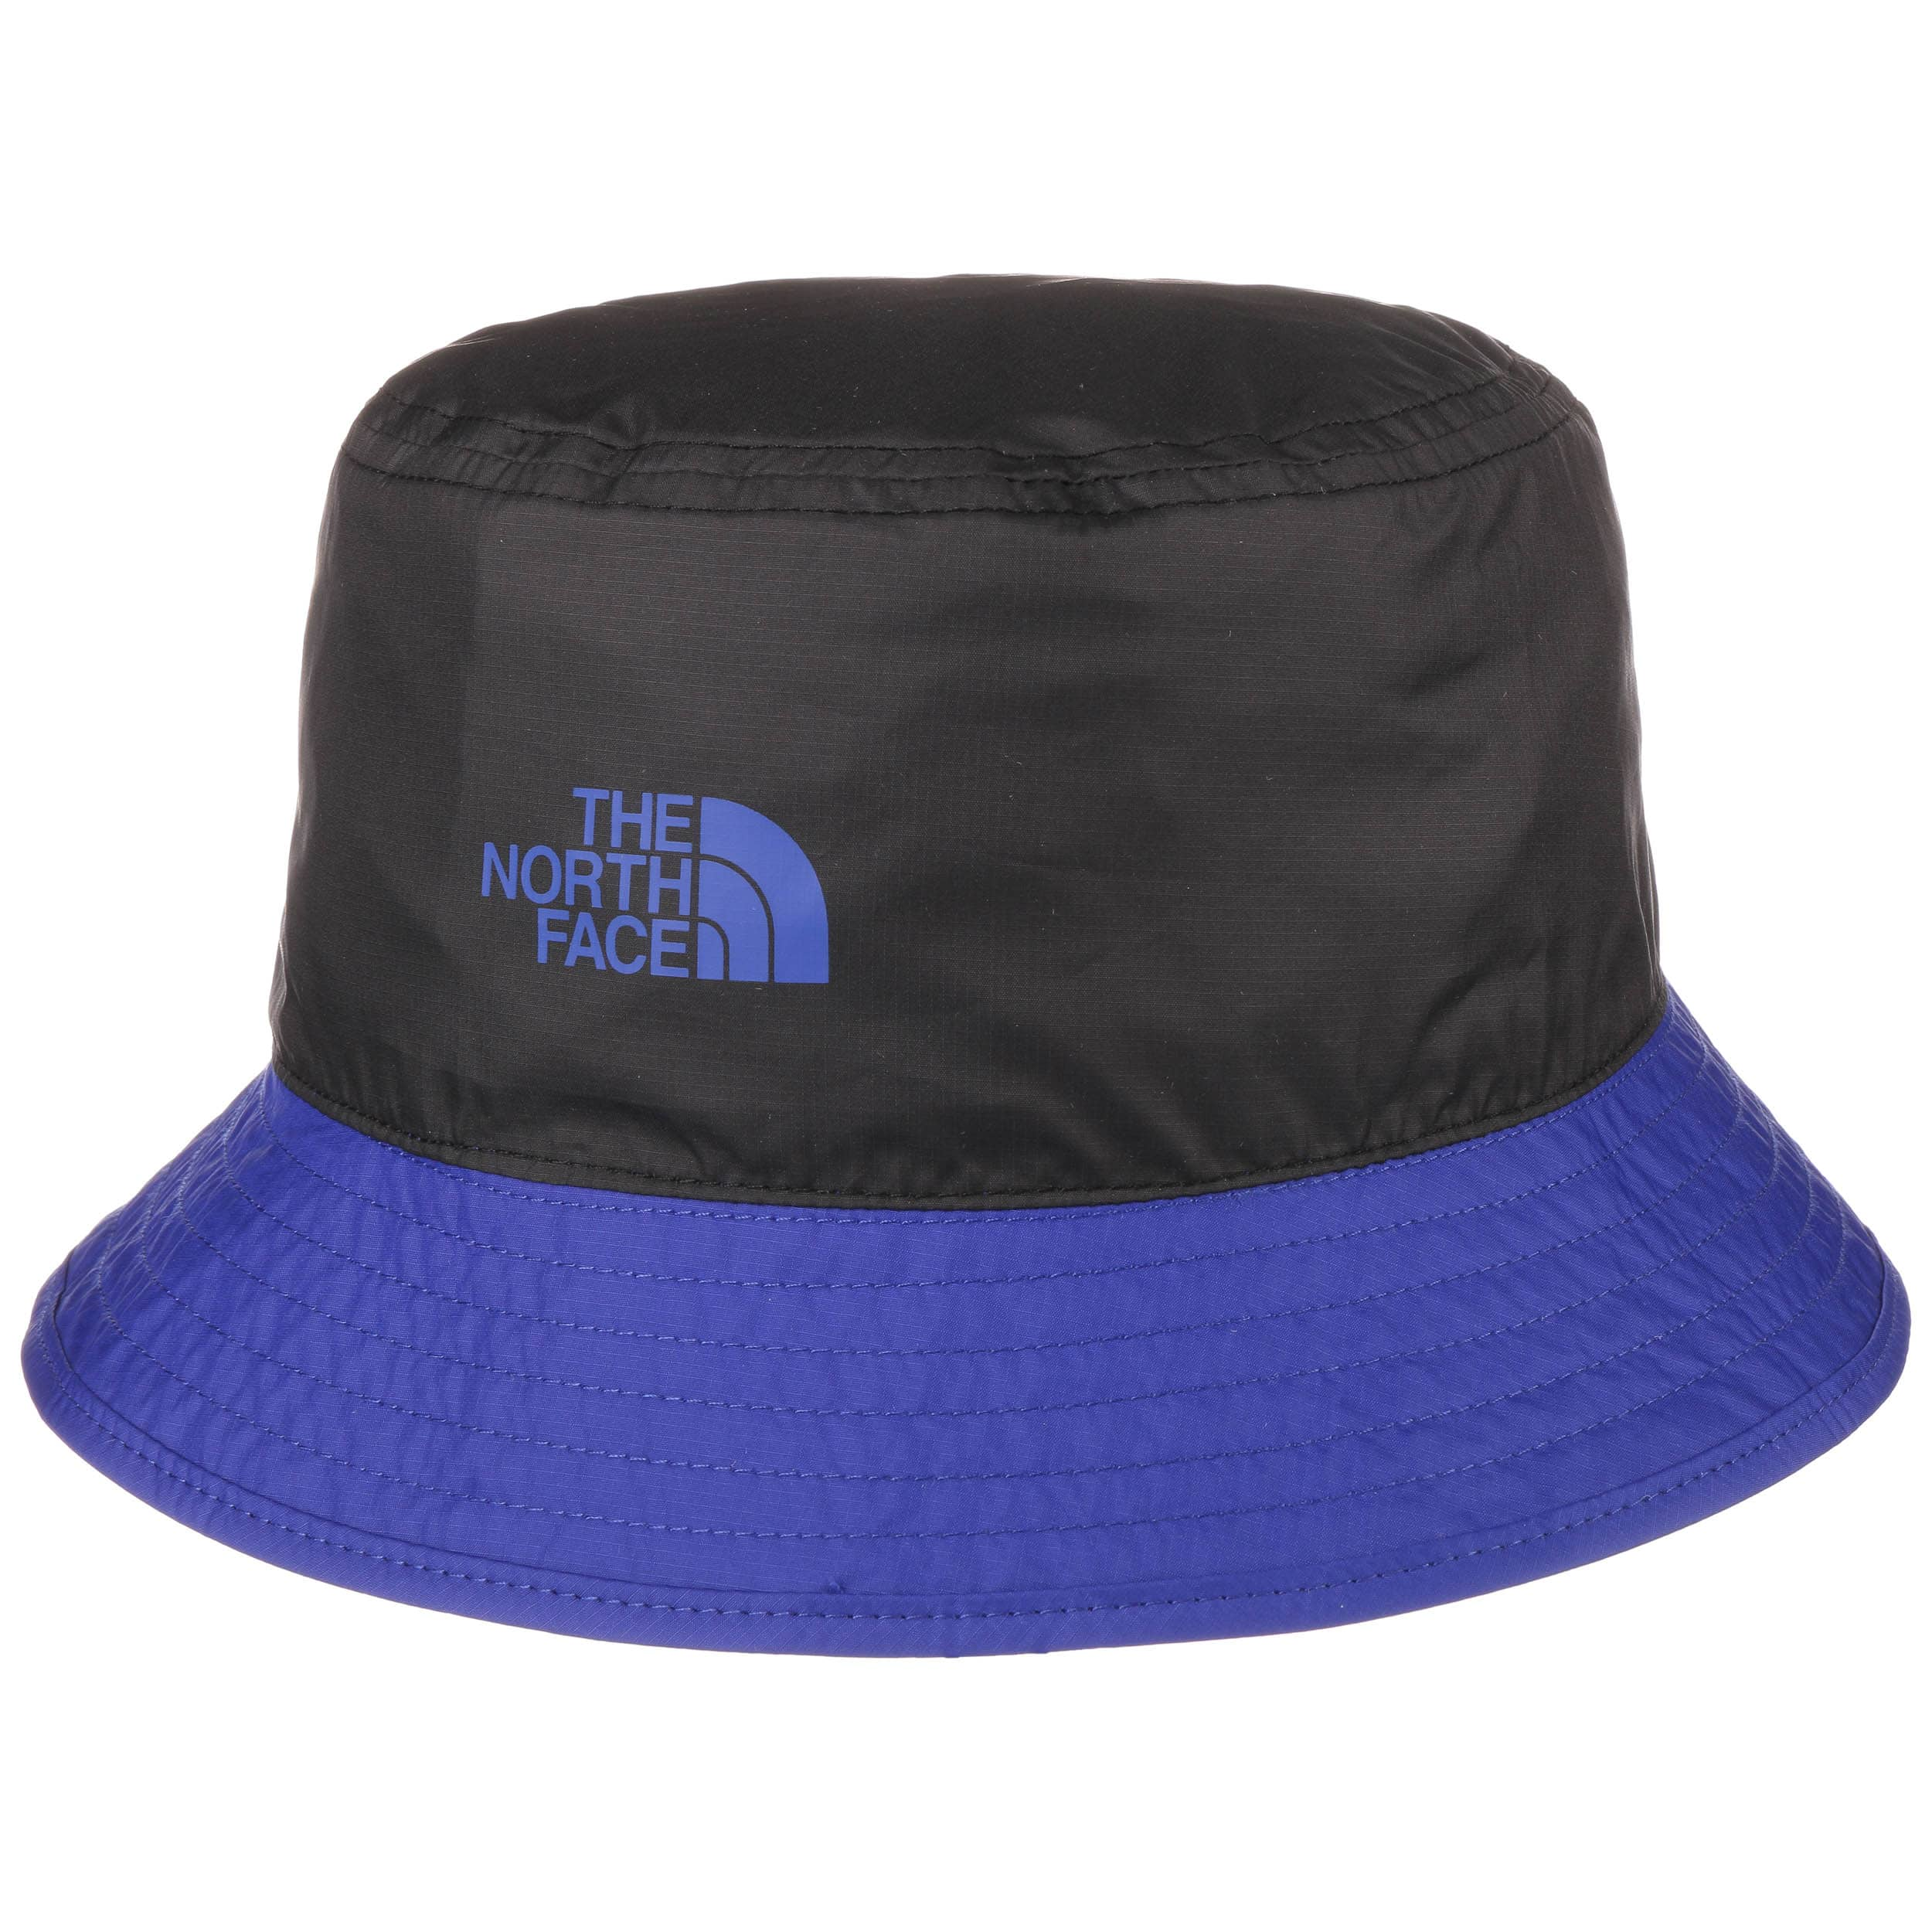 98f2bbed626 Sun Stash Reversible Hat by The North Face - blue 1 ...